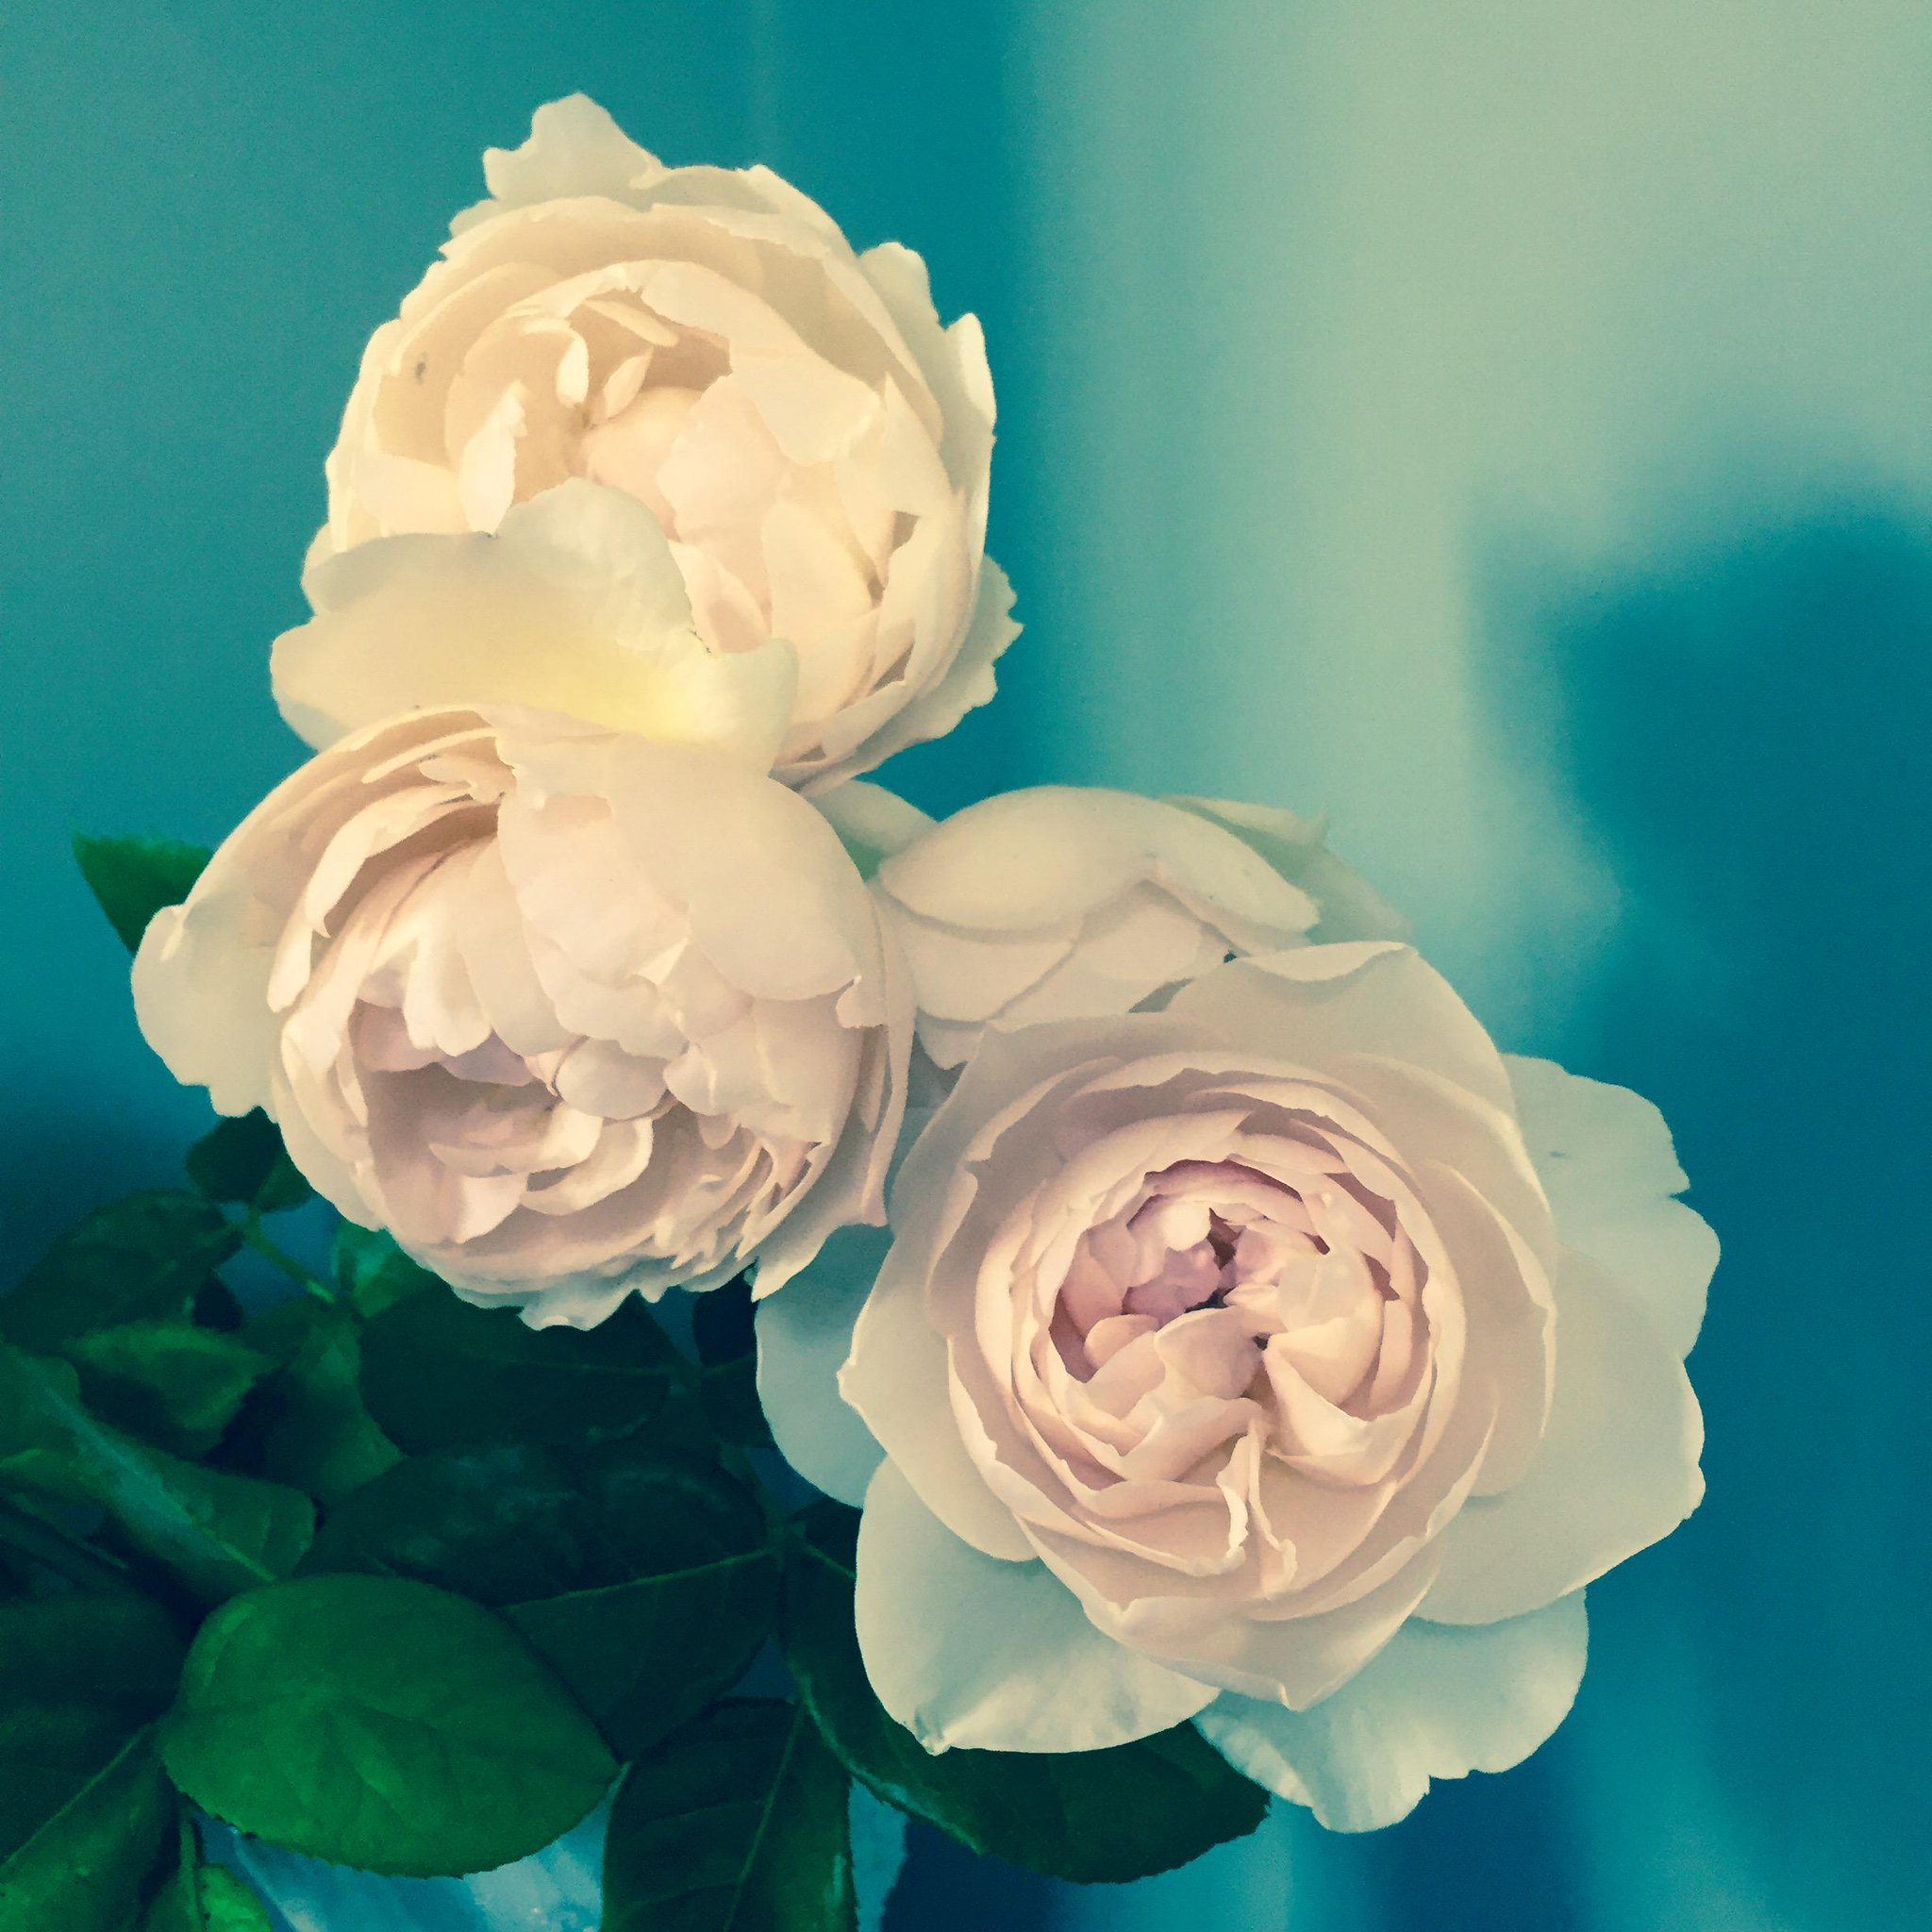 They smell even better than they look! X Stella http://t.co/CLjpnE12bU